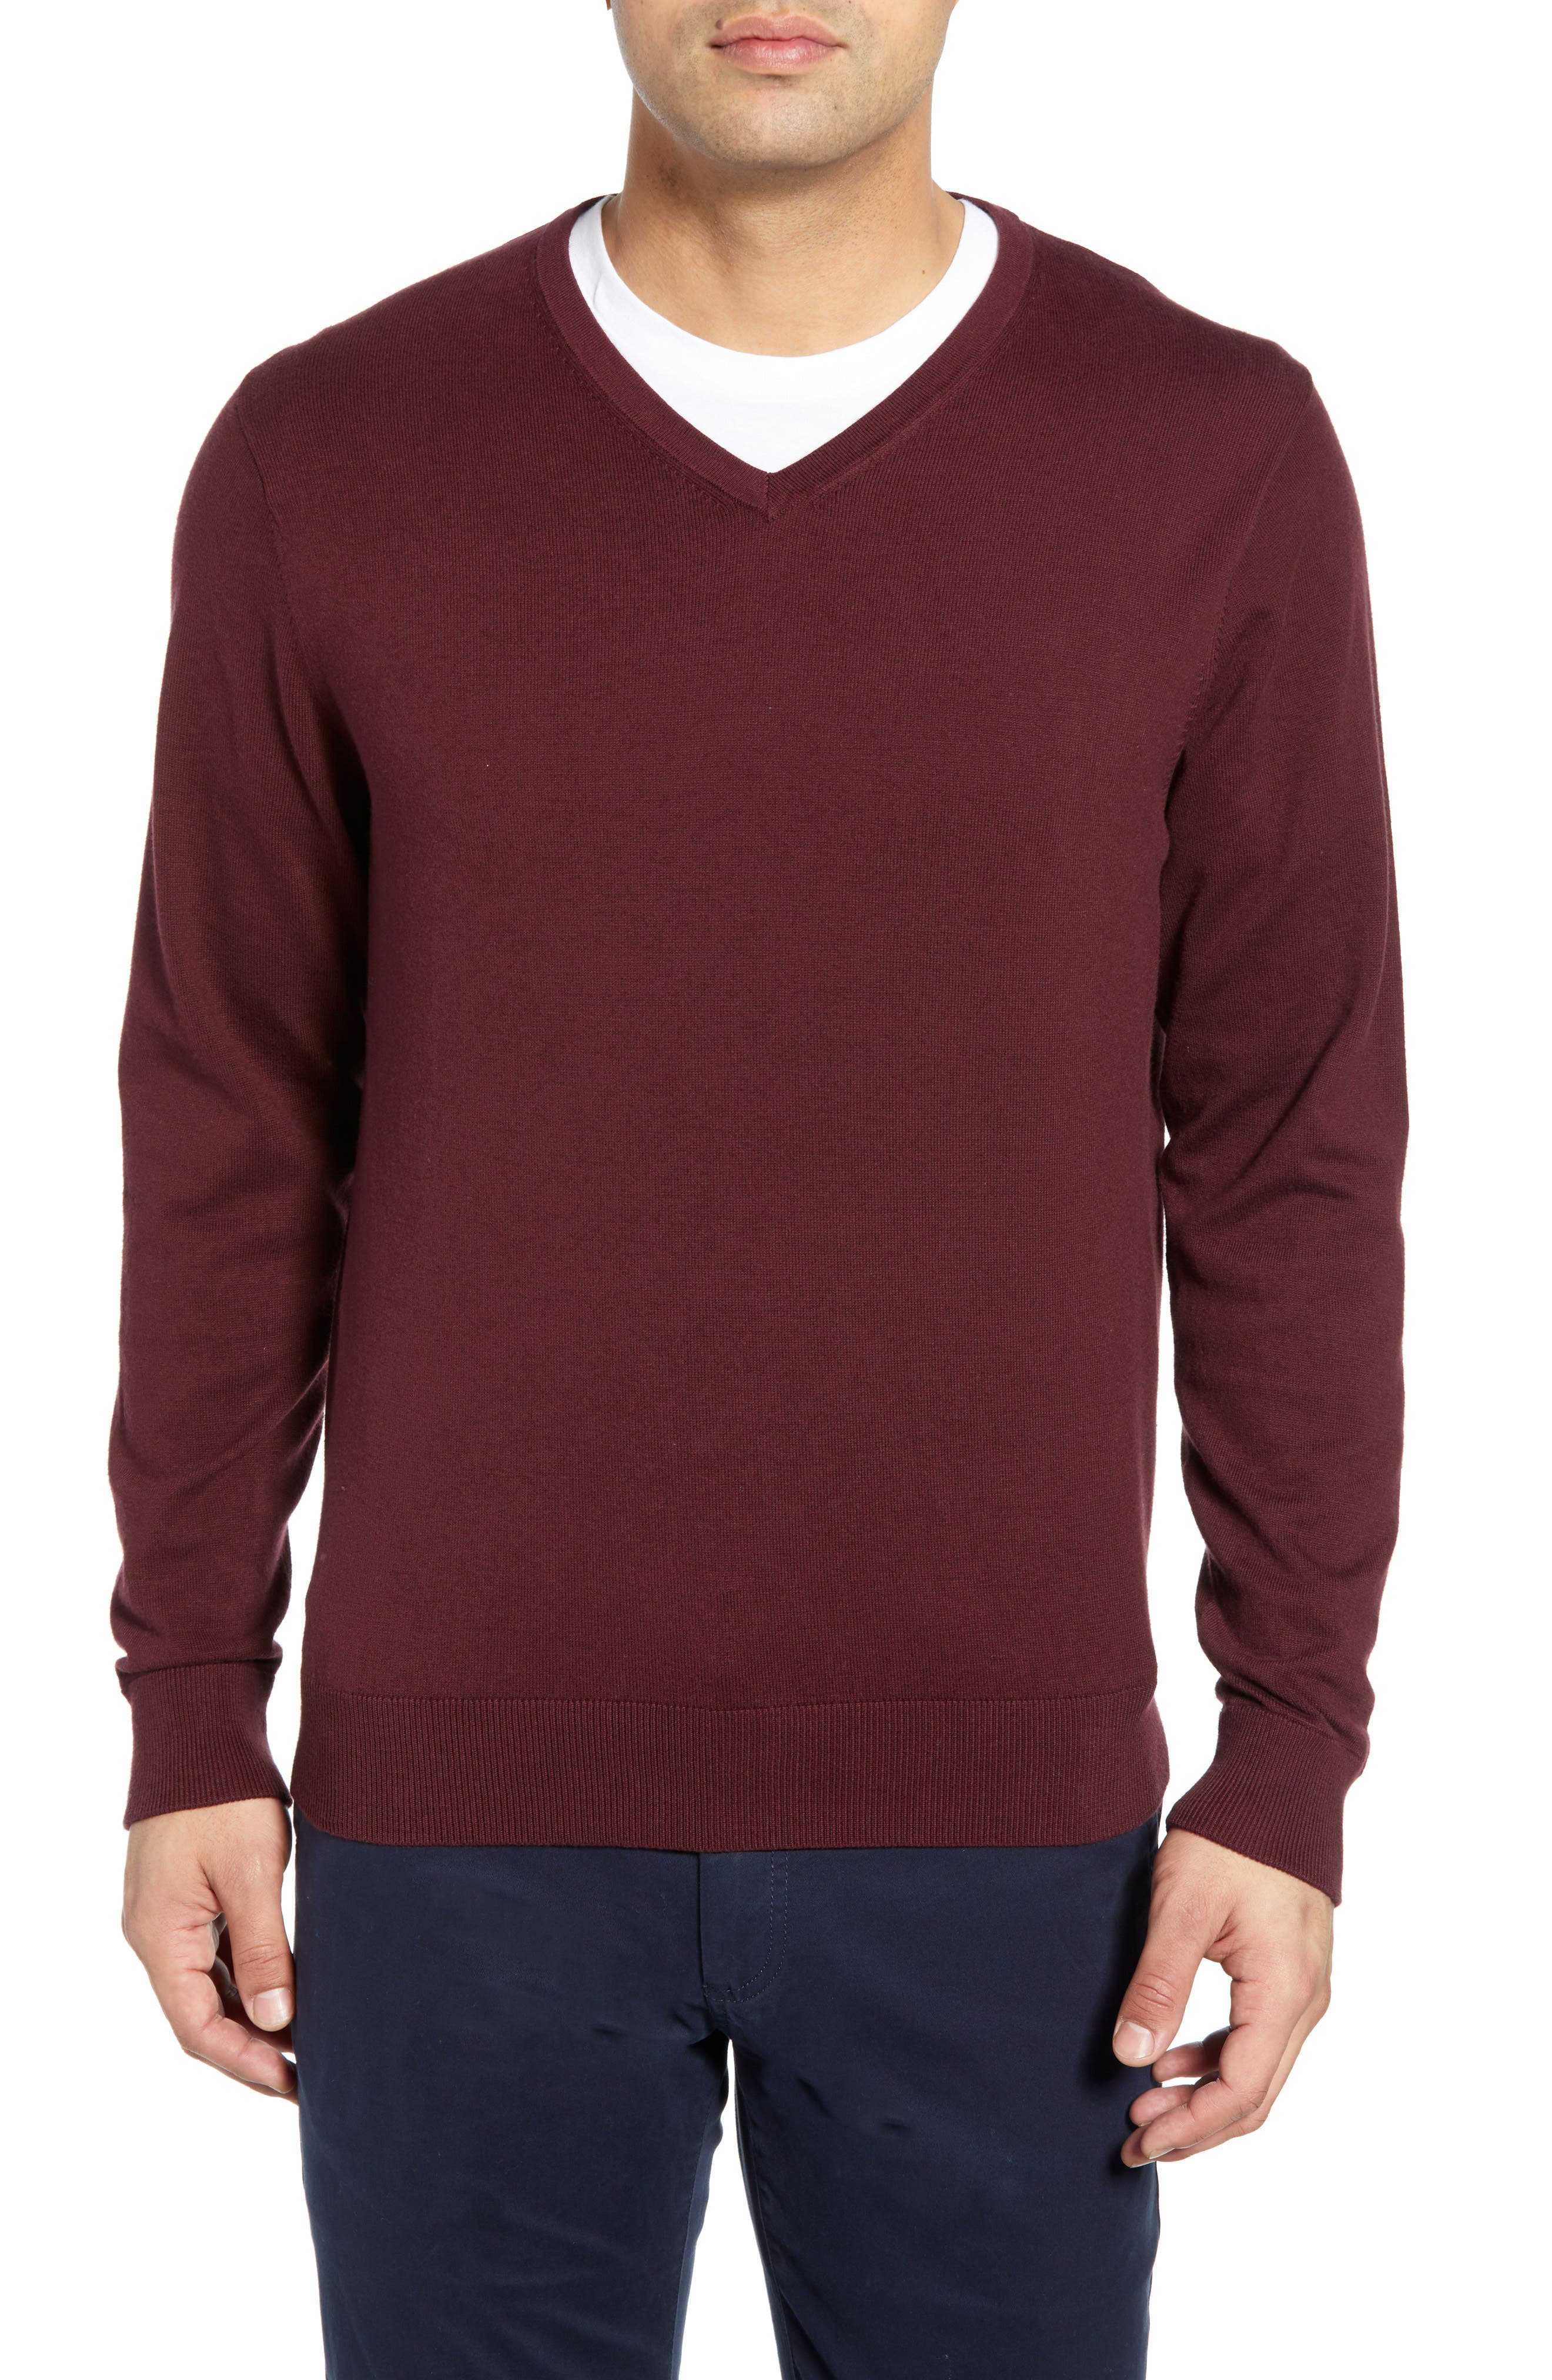 Cutter & Buck Lakemont V-Neck Sweater, Red